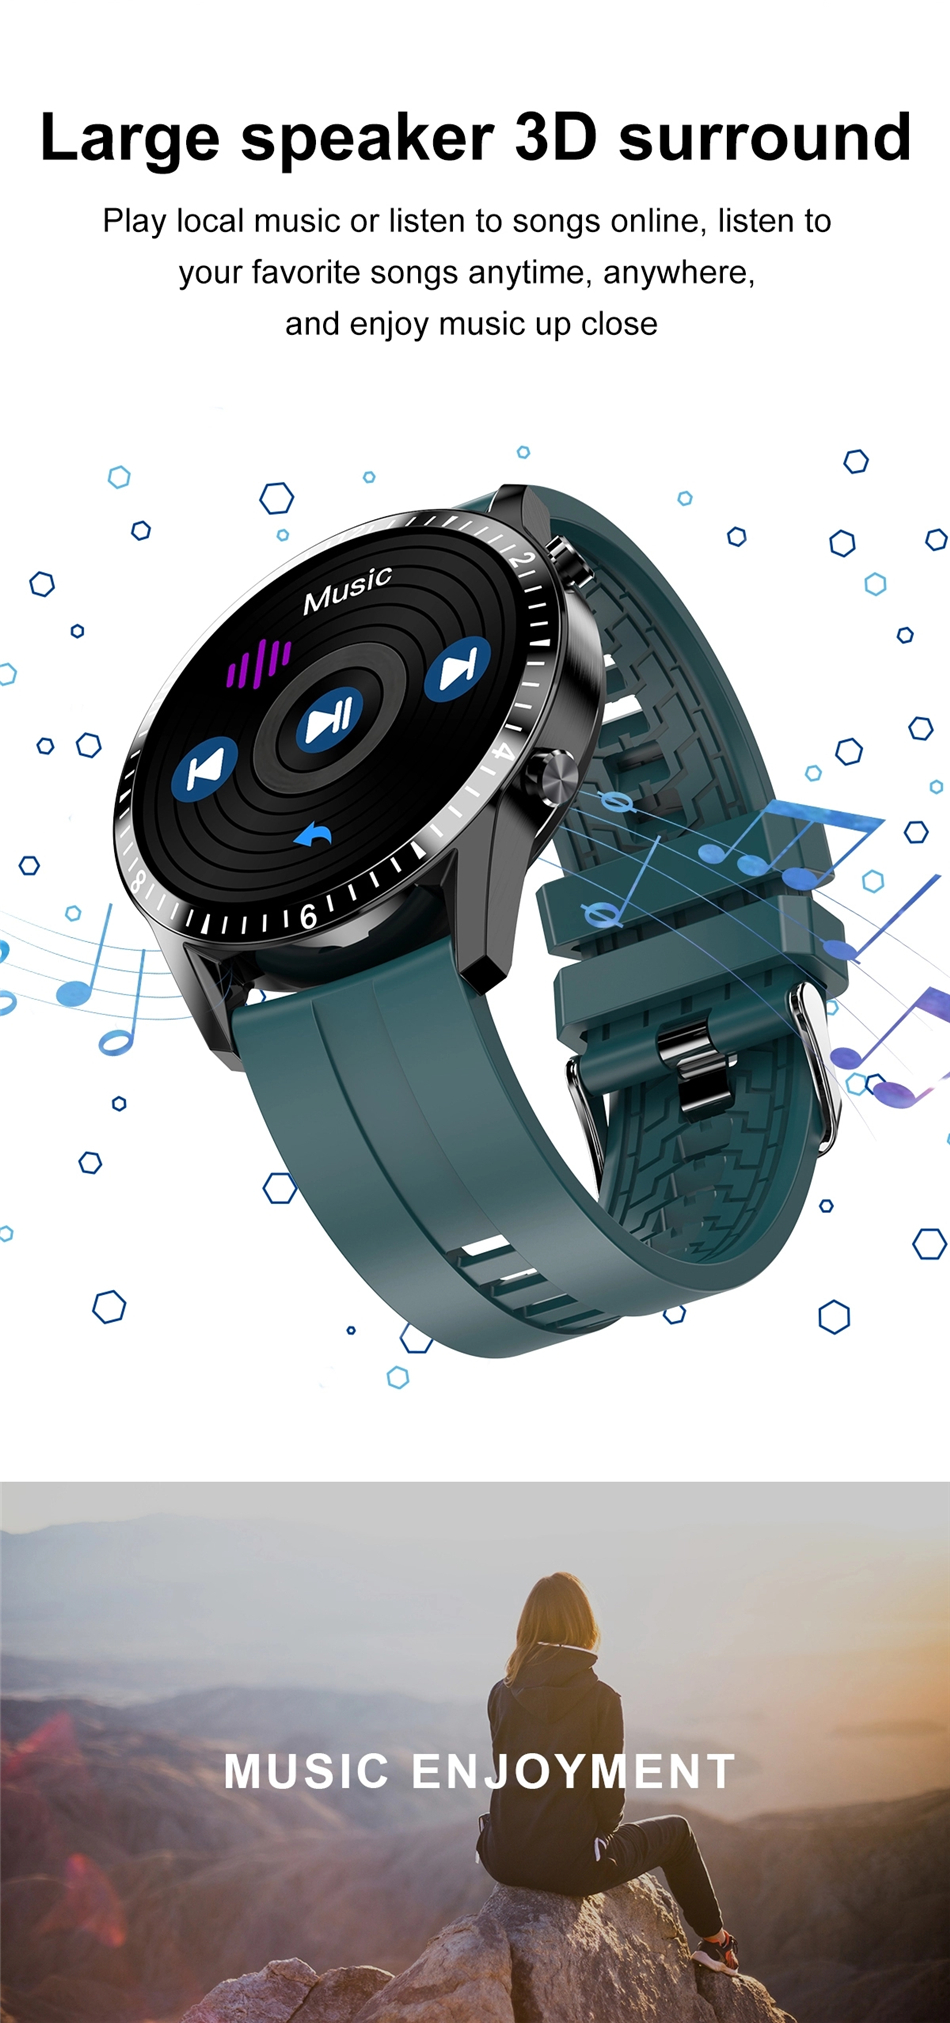 H46e2fdb0b14c449f882d8645e9042ccbI 2021 Smart Watch Phone Full Touch Screen Sport Fitness Watch IP68 Waterproof Bluetooth Connection For Android ios smartwatch Men